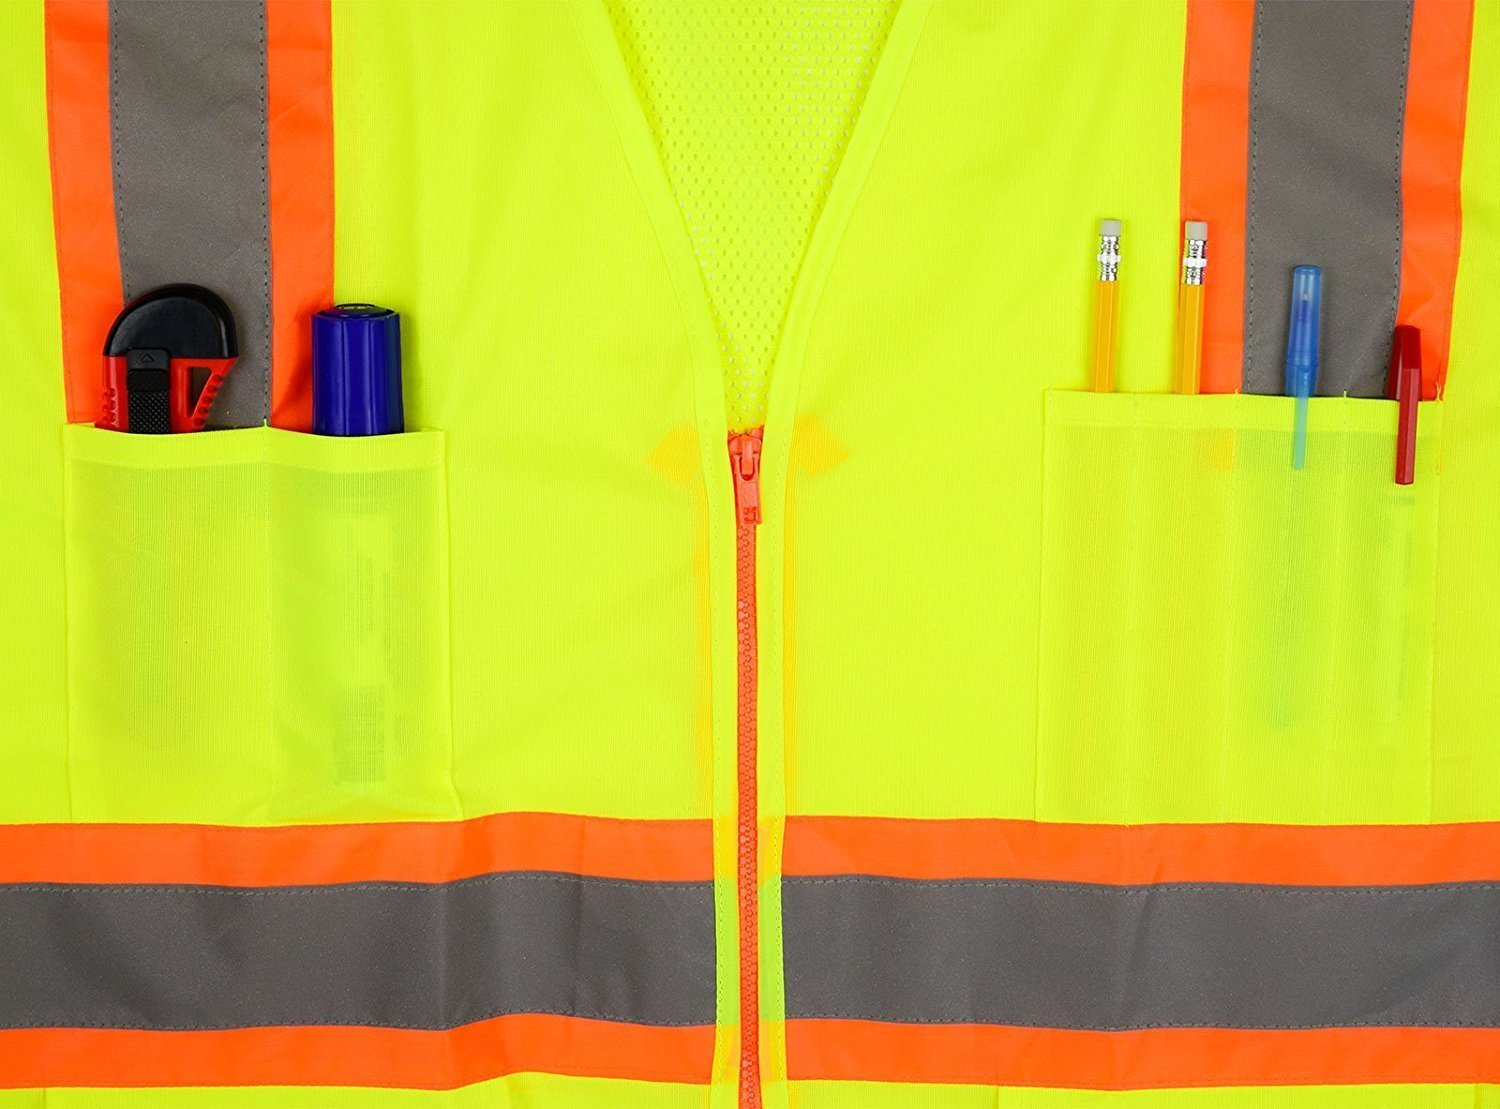 ANSI//ISEA Standard- Class 2 RK Industries Group Inc. Medium, Neon Orange RK Safety 9811 Two Tone High Visibility Safety Vest with Reflective Strips and Pockets